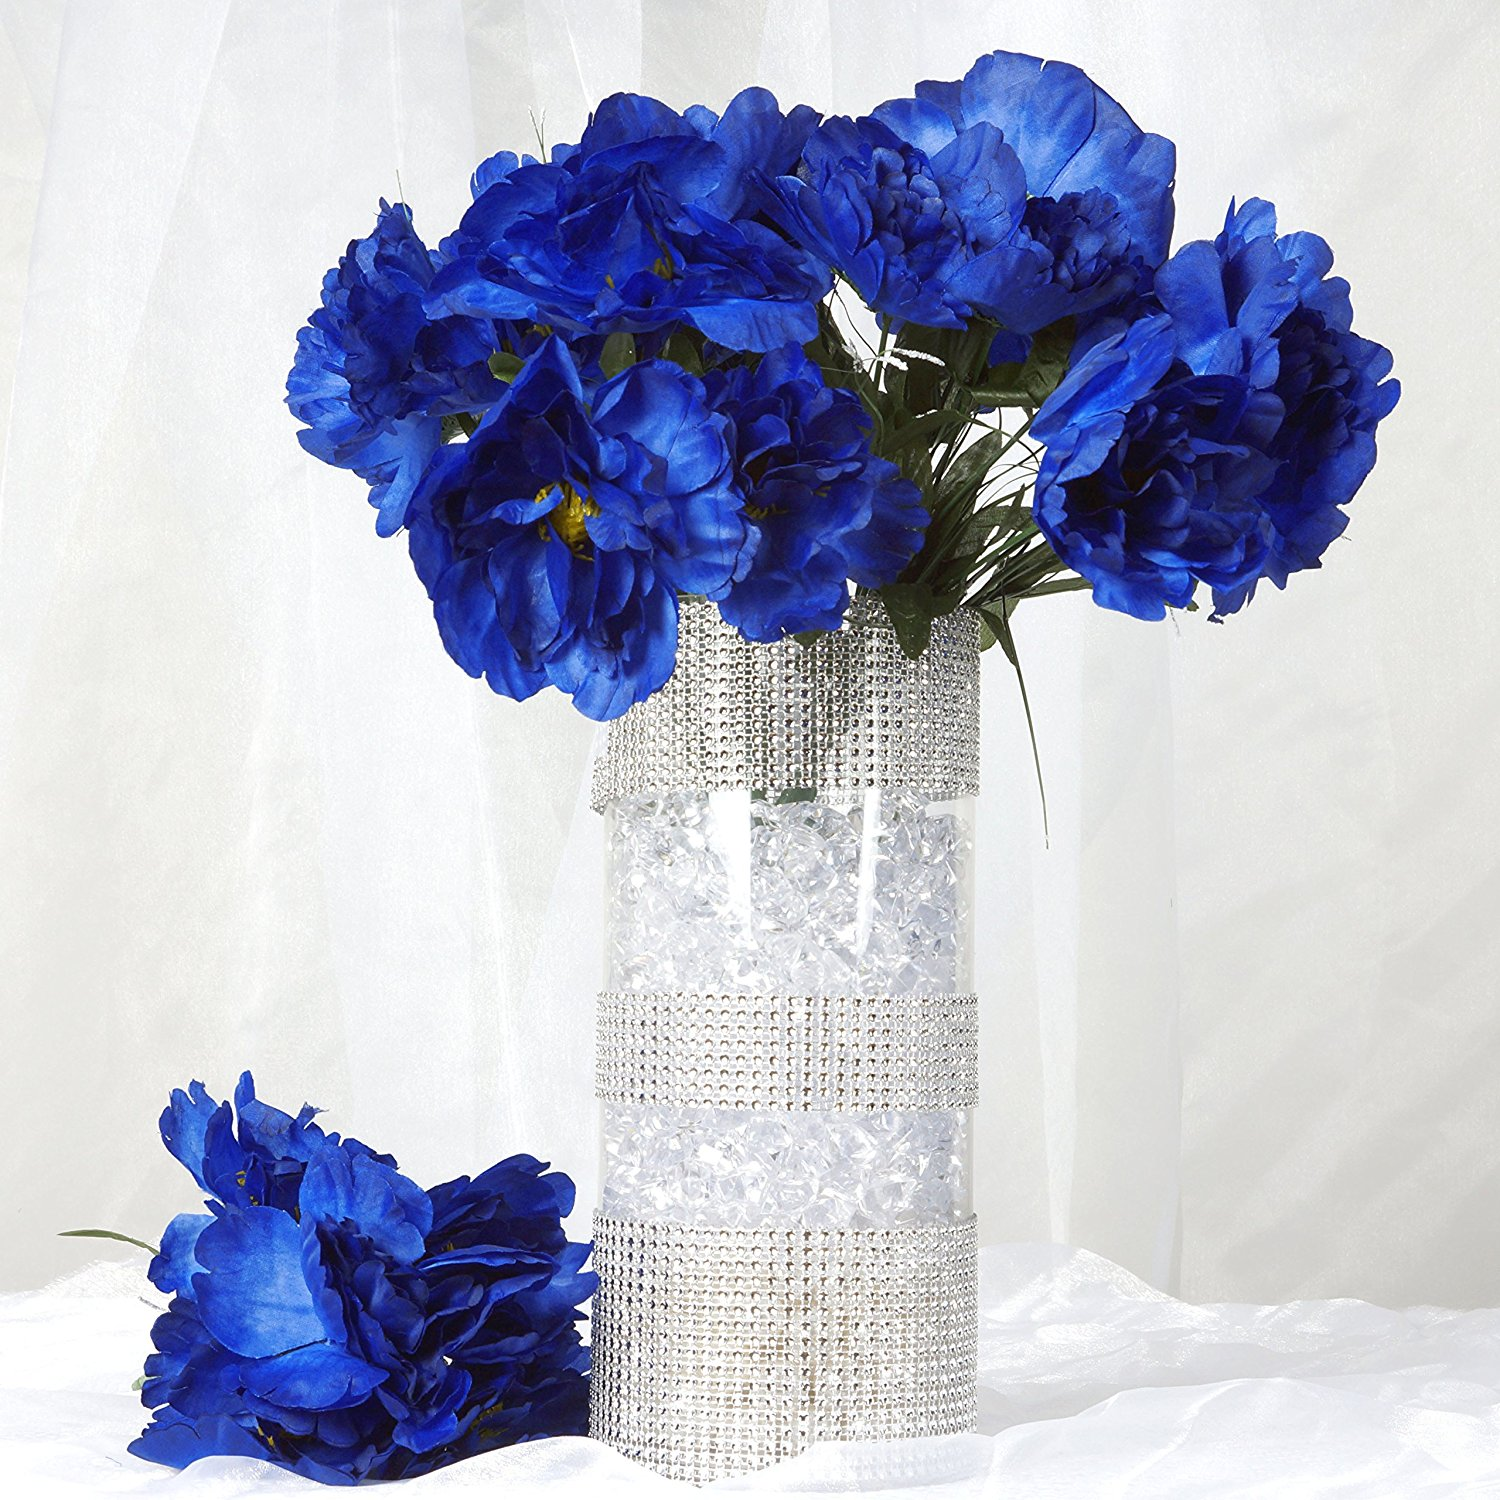 Cheap royal silk flowers find royal silk flowers deals on line at balsacircle 60 pcs silk peony flowers for wedding arrangements 12 bushes royal blue izmirmasajfo